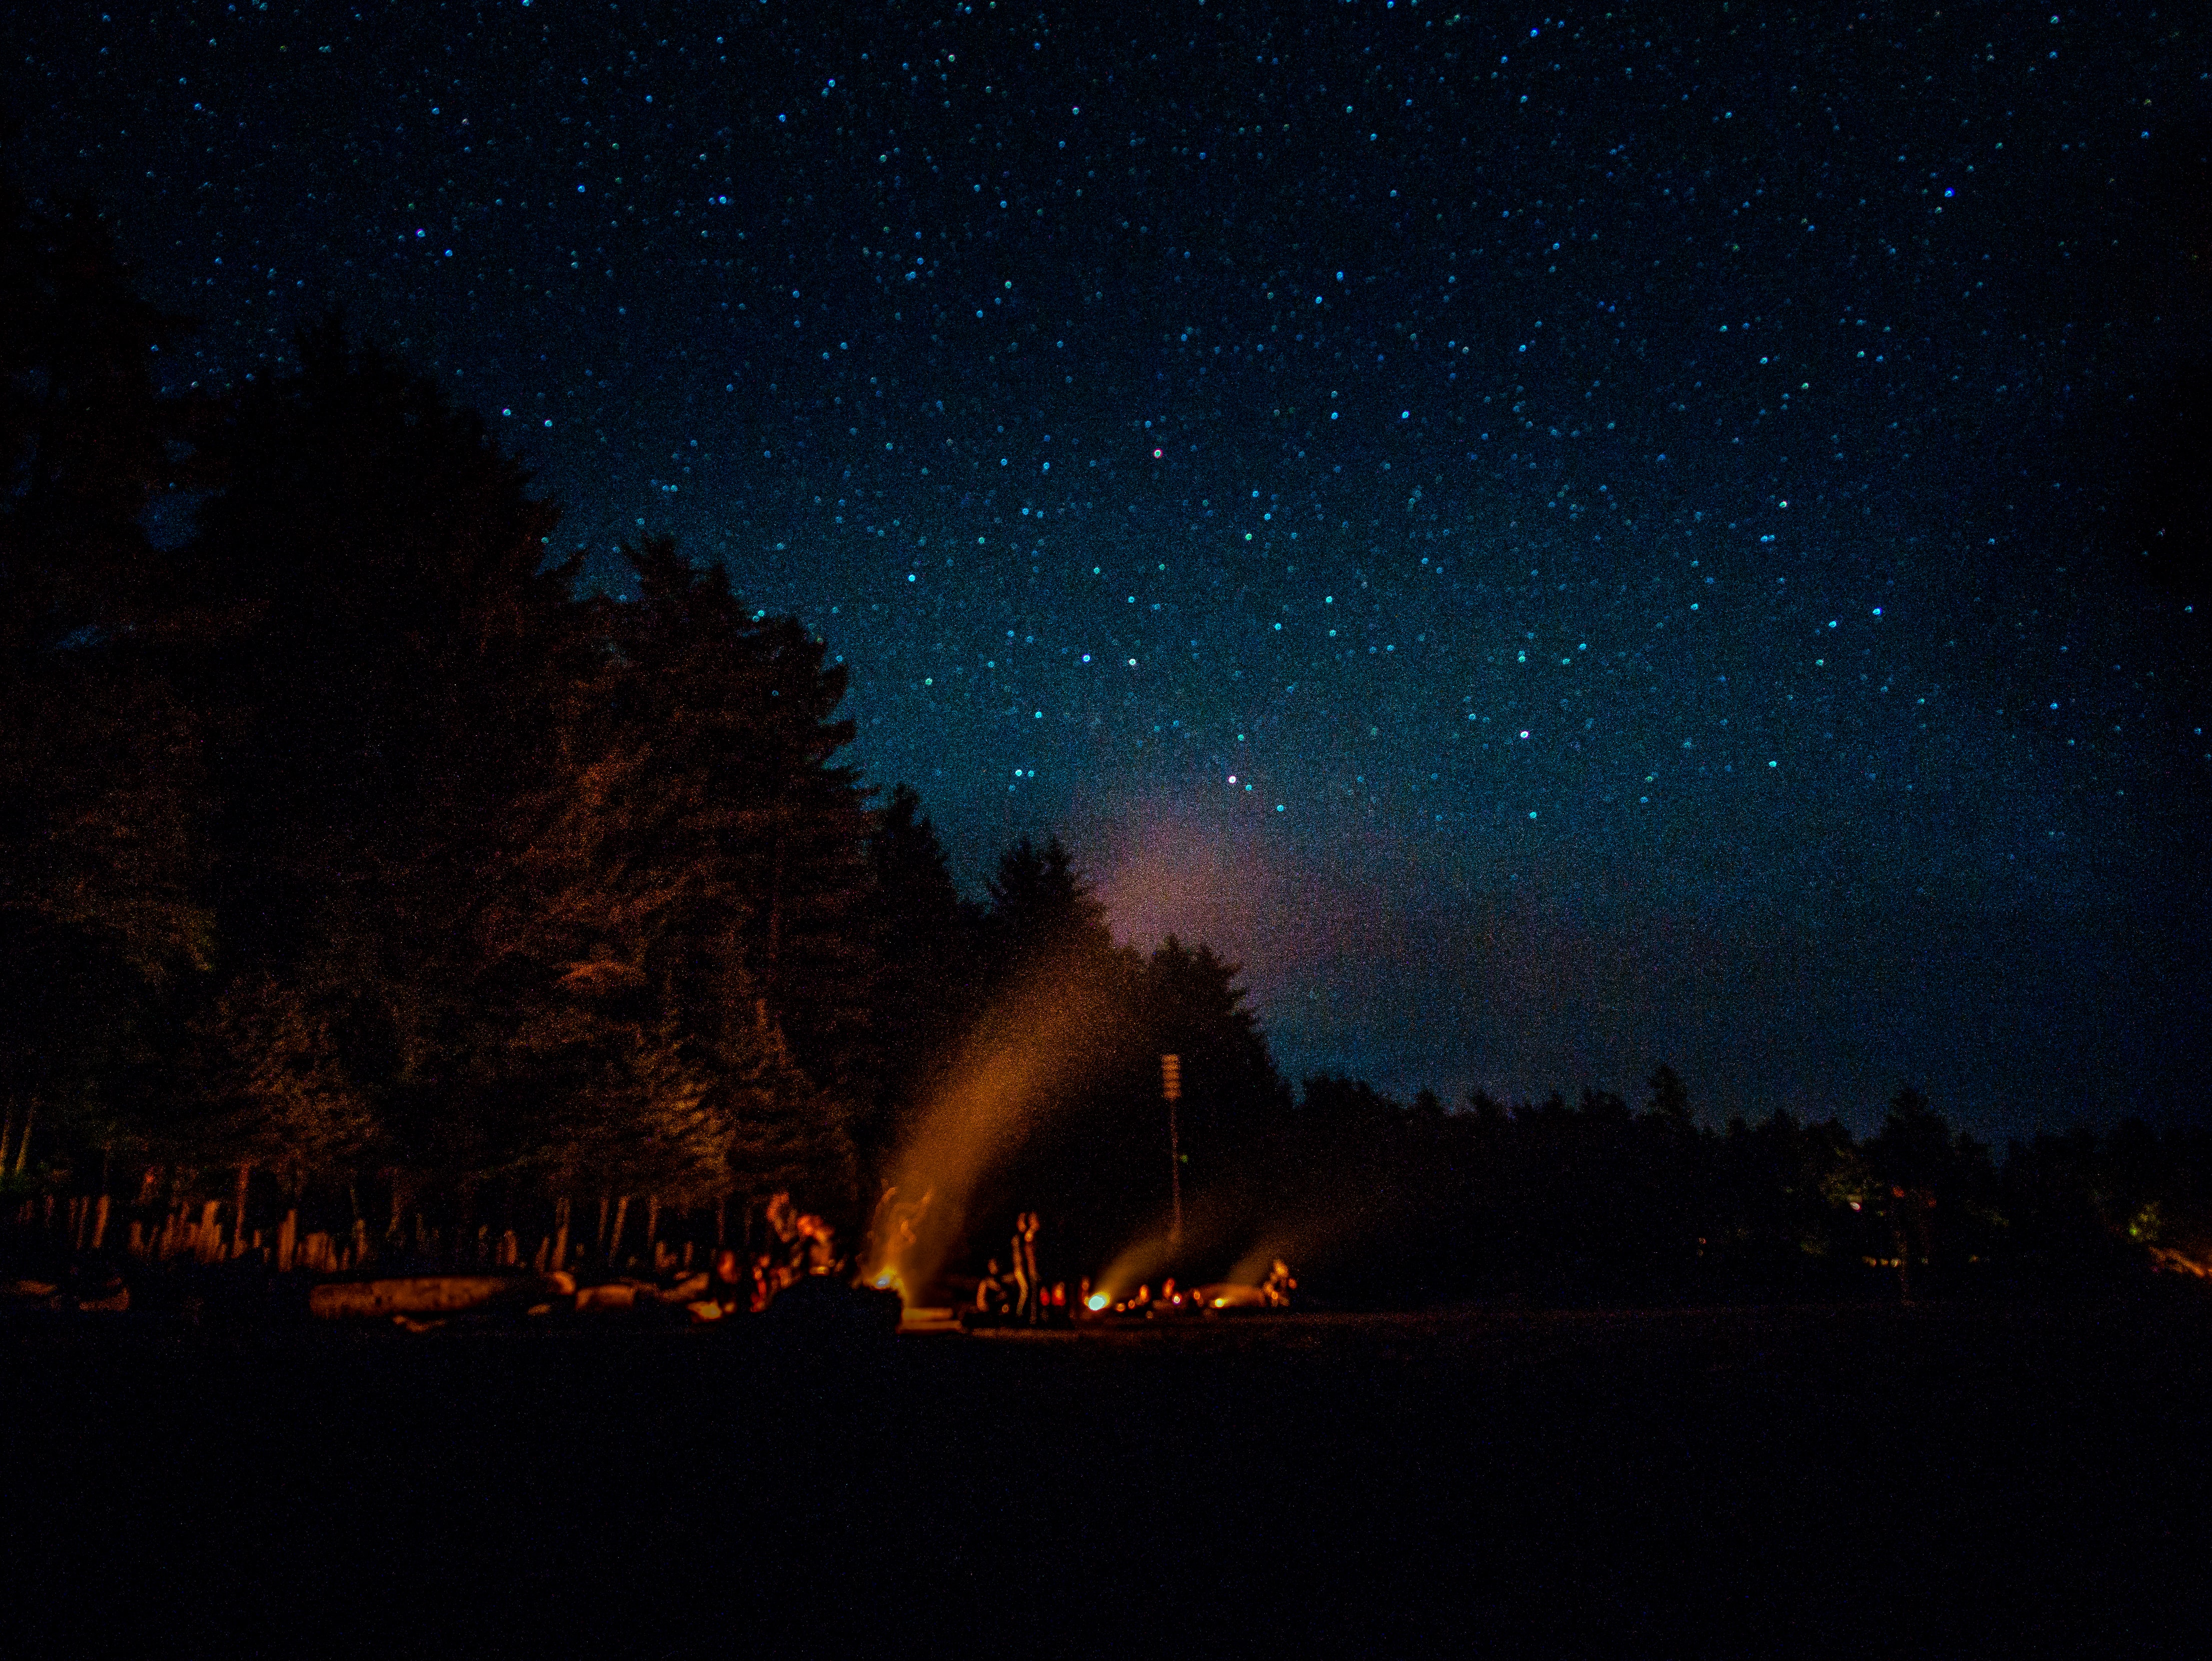 people having bonfire under blue sky filled with stars at night time